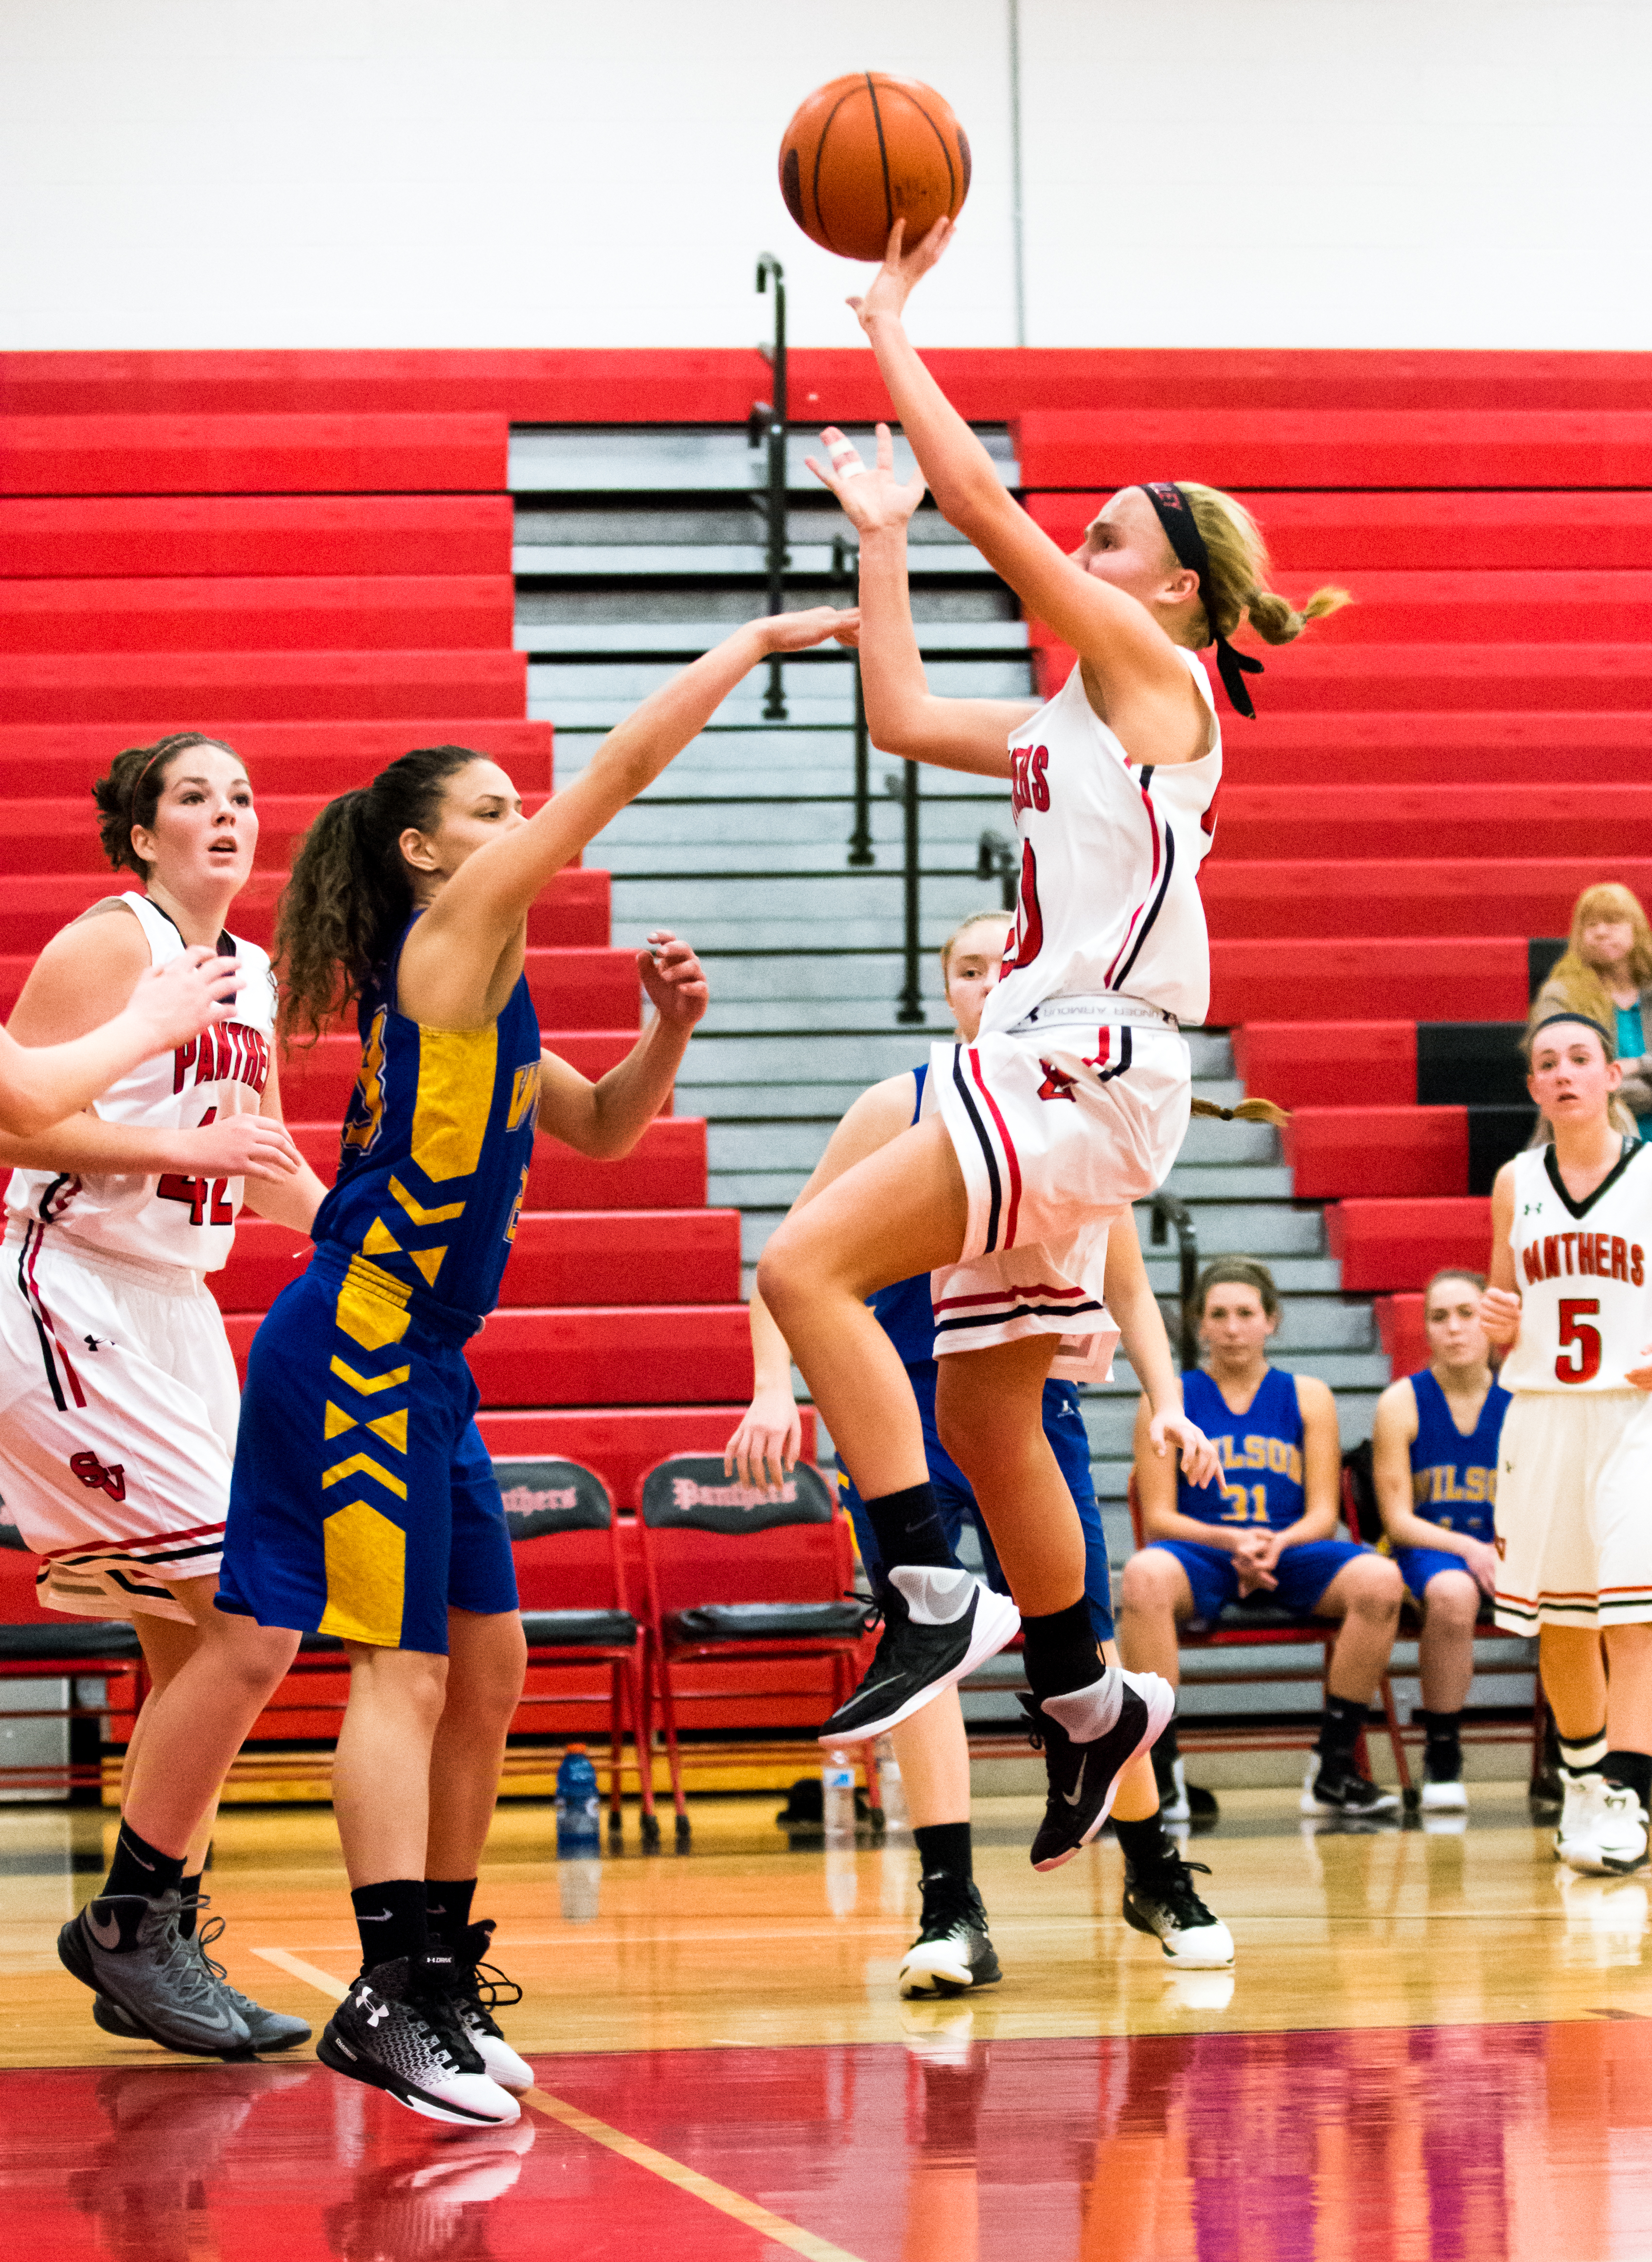 Sophomore, Brooke Riefenstahl drives hard to the hoop for the Panther lead.